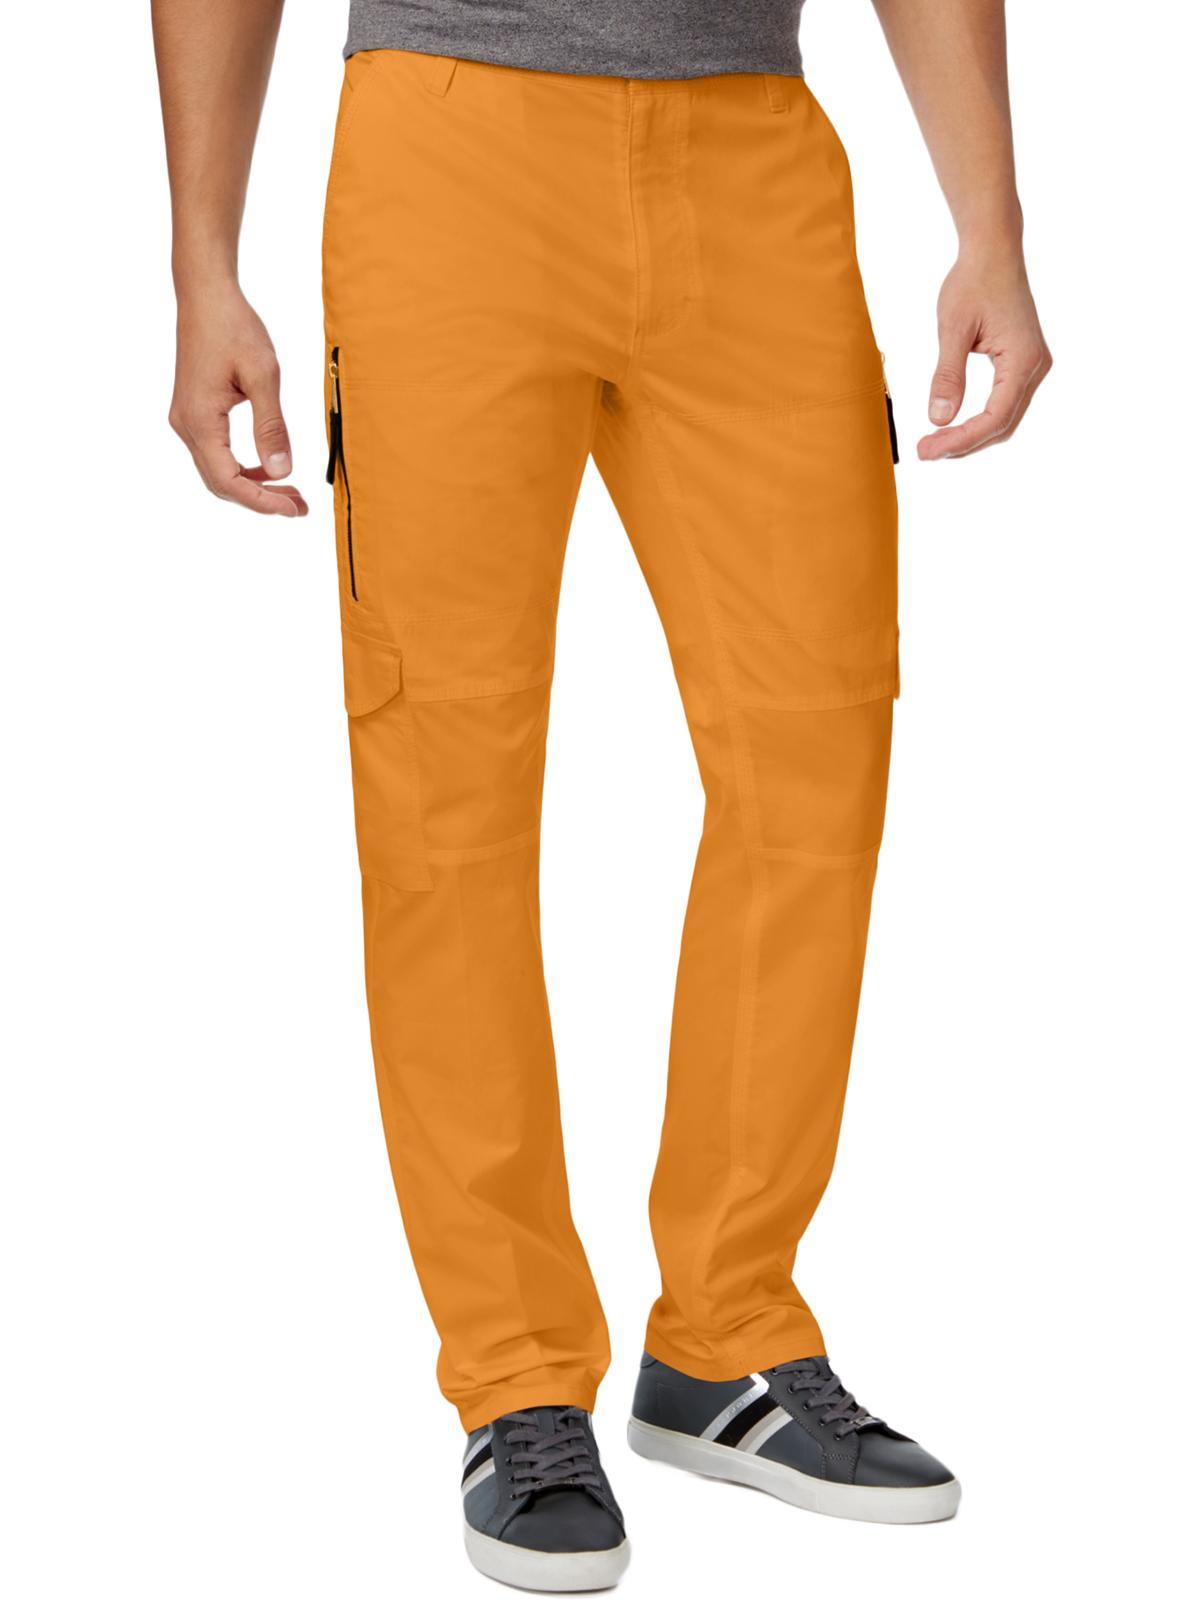 Sean John Mens Flat Front Contrast Trim Cargo Pants Yellow 42